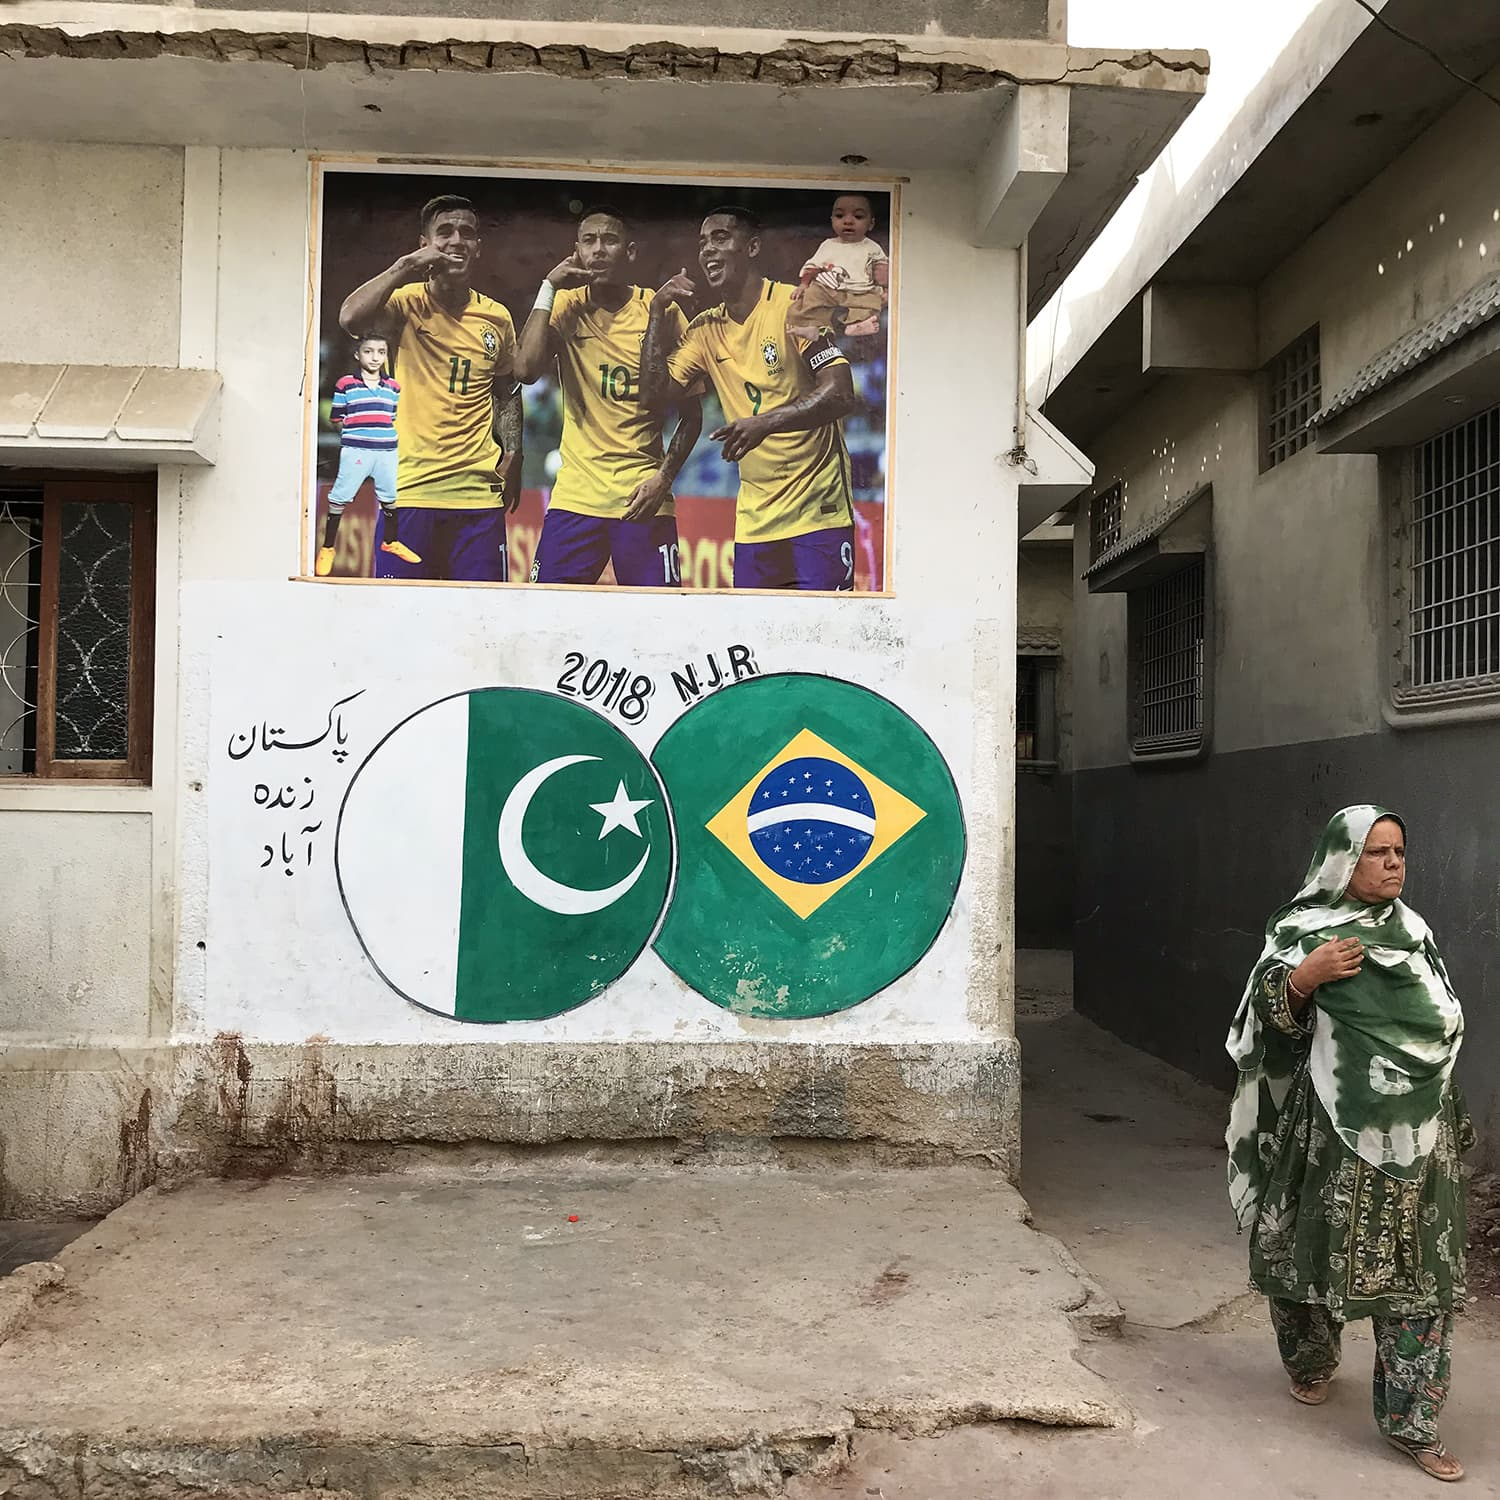 'For a second you'd be mistaken into thinking that Neymar and Messi were from Lyari' [Dawn]